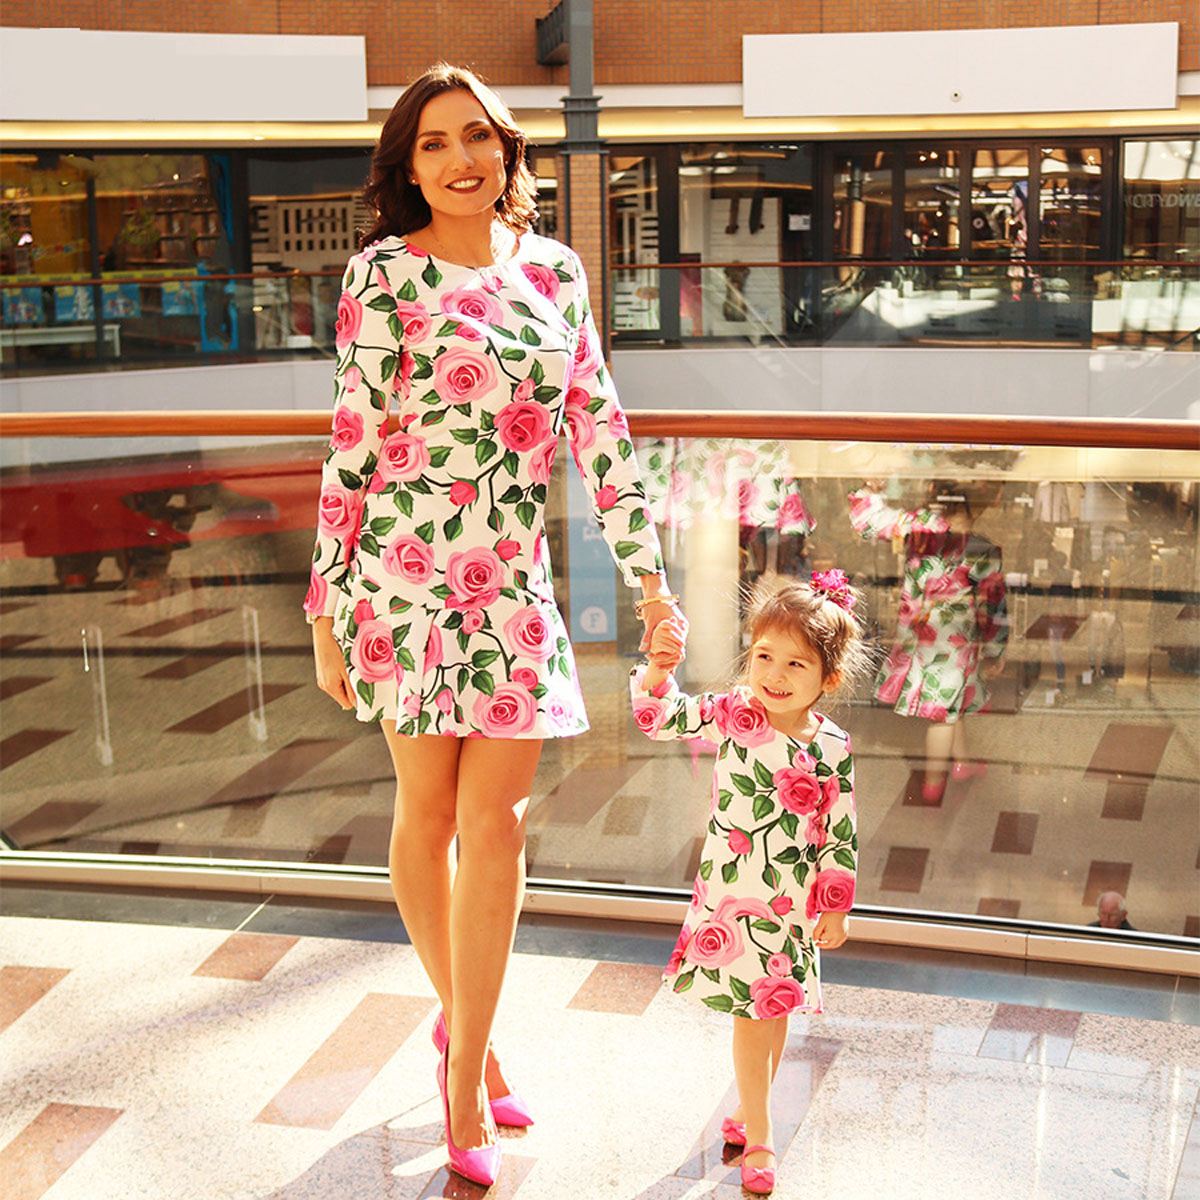 6195ed6b574 Details about Family Dress Mother and Daughter Summer Floral Matching  Outfits Clothes Sundress